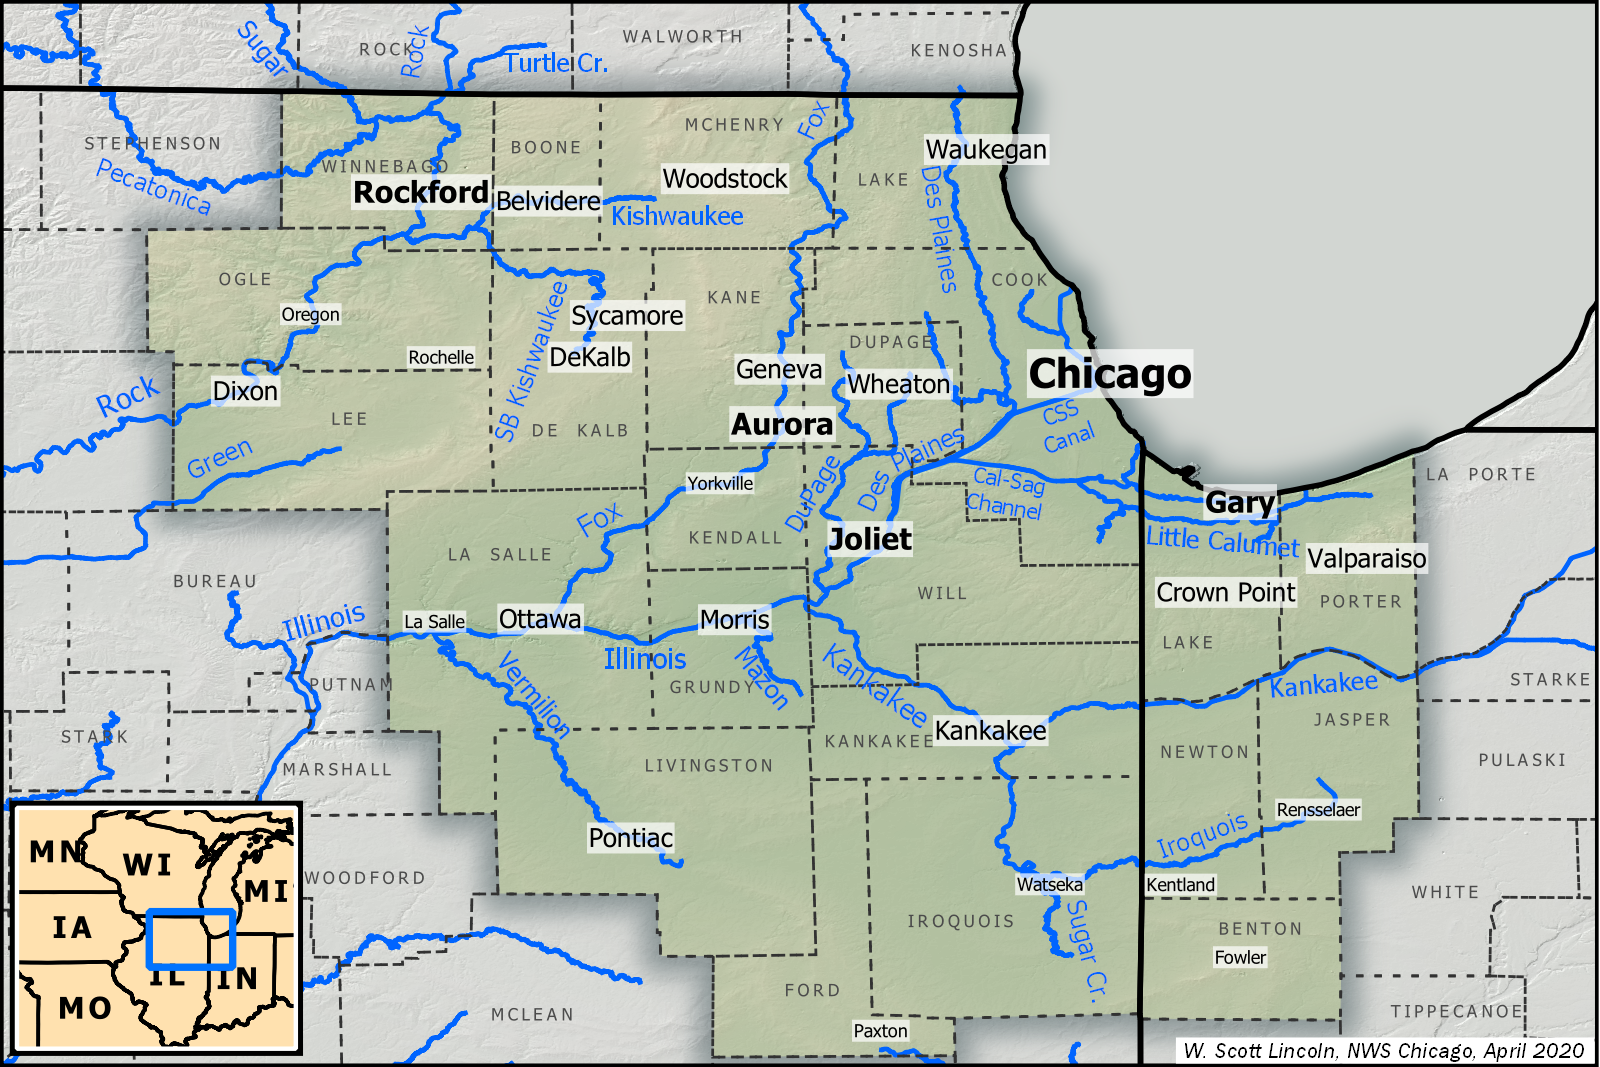 A map showing counties and rivers covered by the NWS Chicago office. This includes the counties of Winnebago, Boone, McHenry, Lake, Ogle, Lee, De Kalb, Kane, DuPage, Cook, La Salle, Kendall, Grundy, Will, Livingston, Kankakee, Ford, and Iroquois in Illinois, Lake, Porter, Newton, Jasper, and Benton in Indiana.